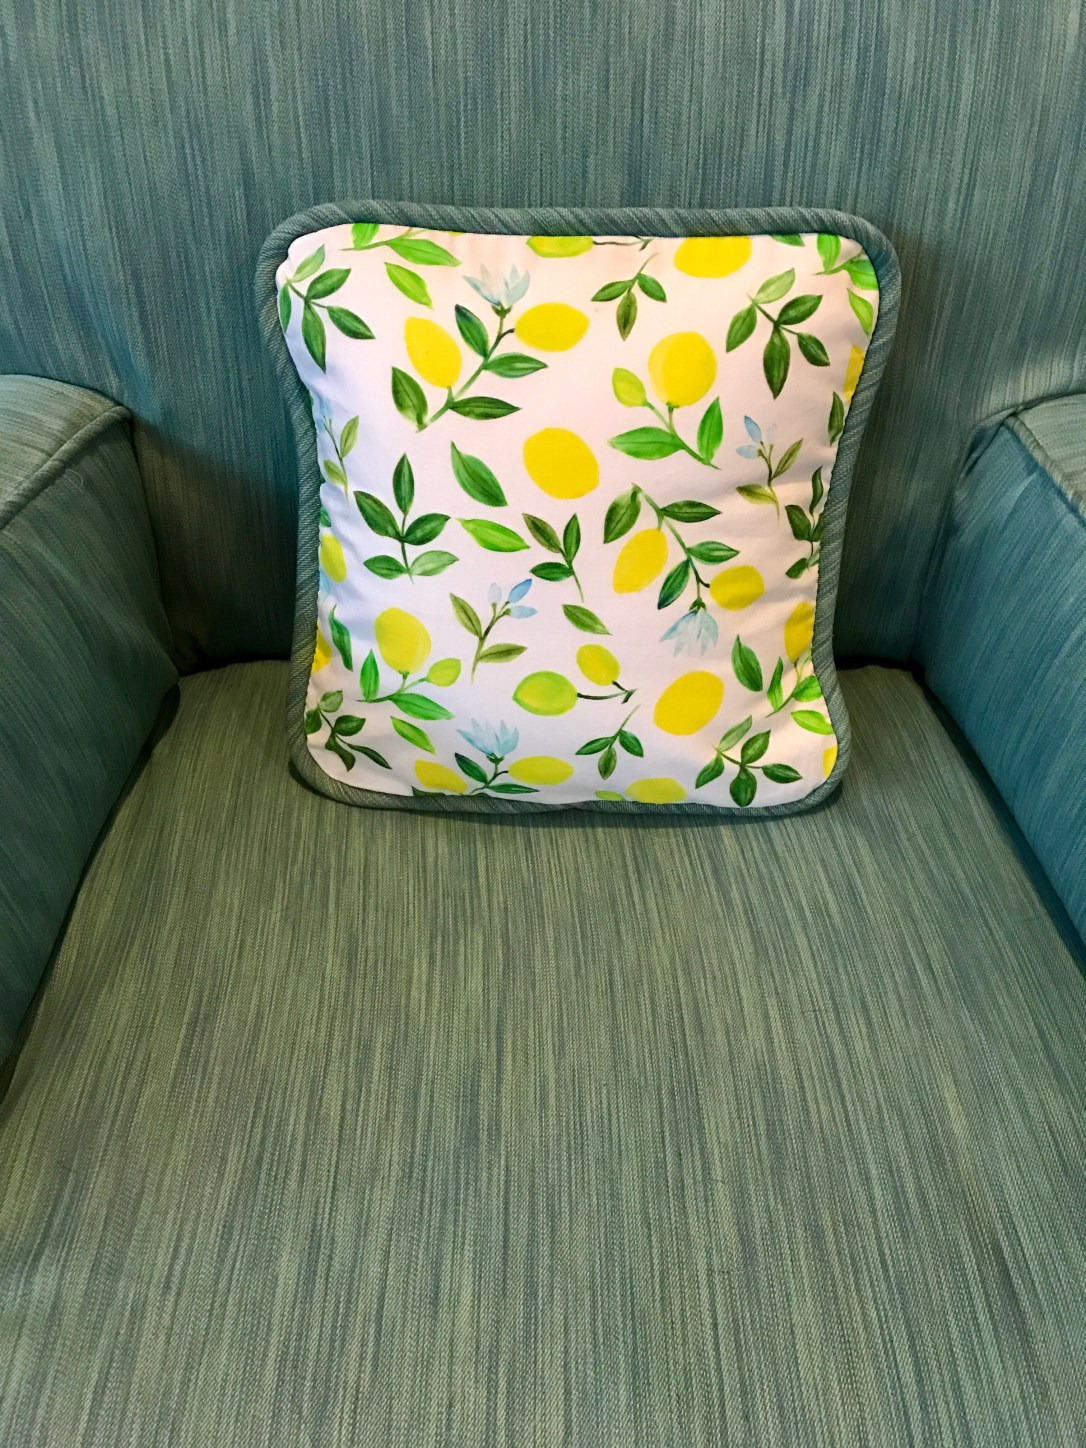 turq chair with lemon pillow